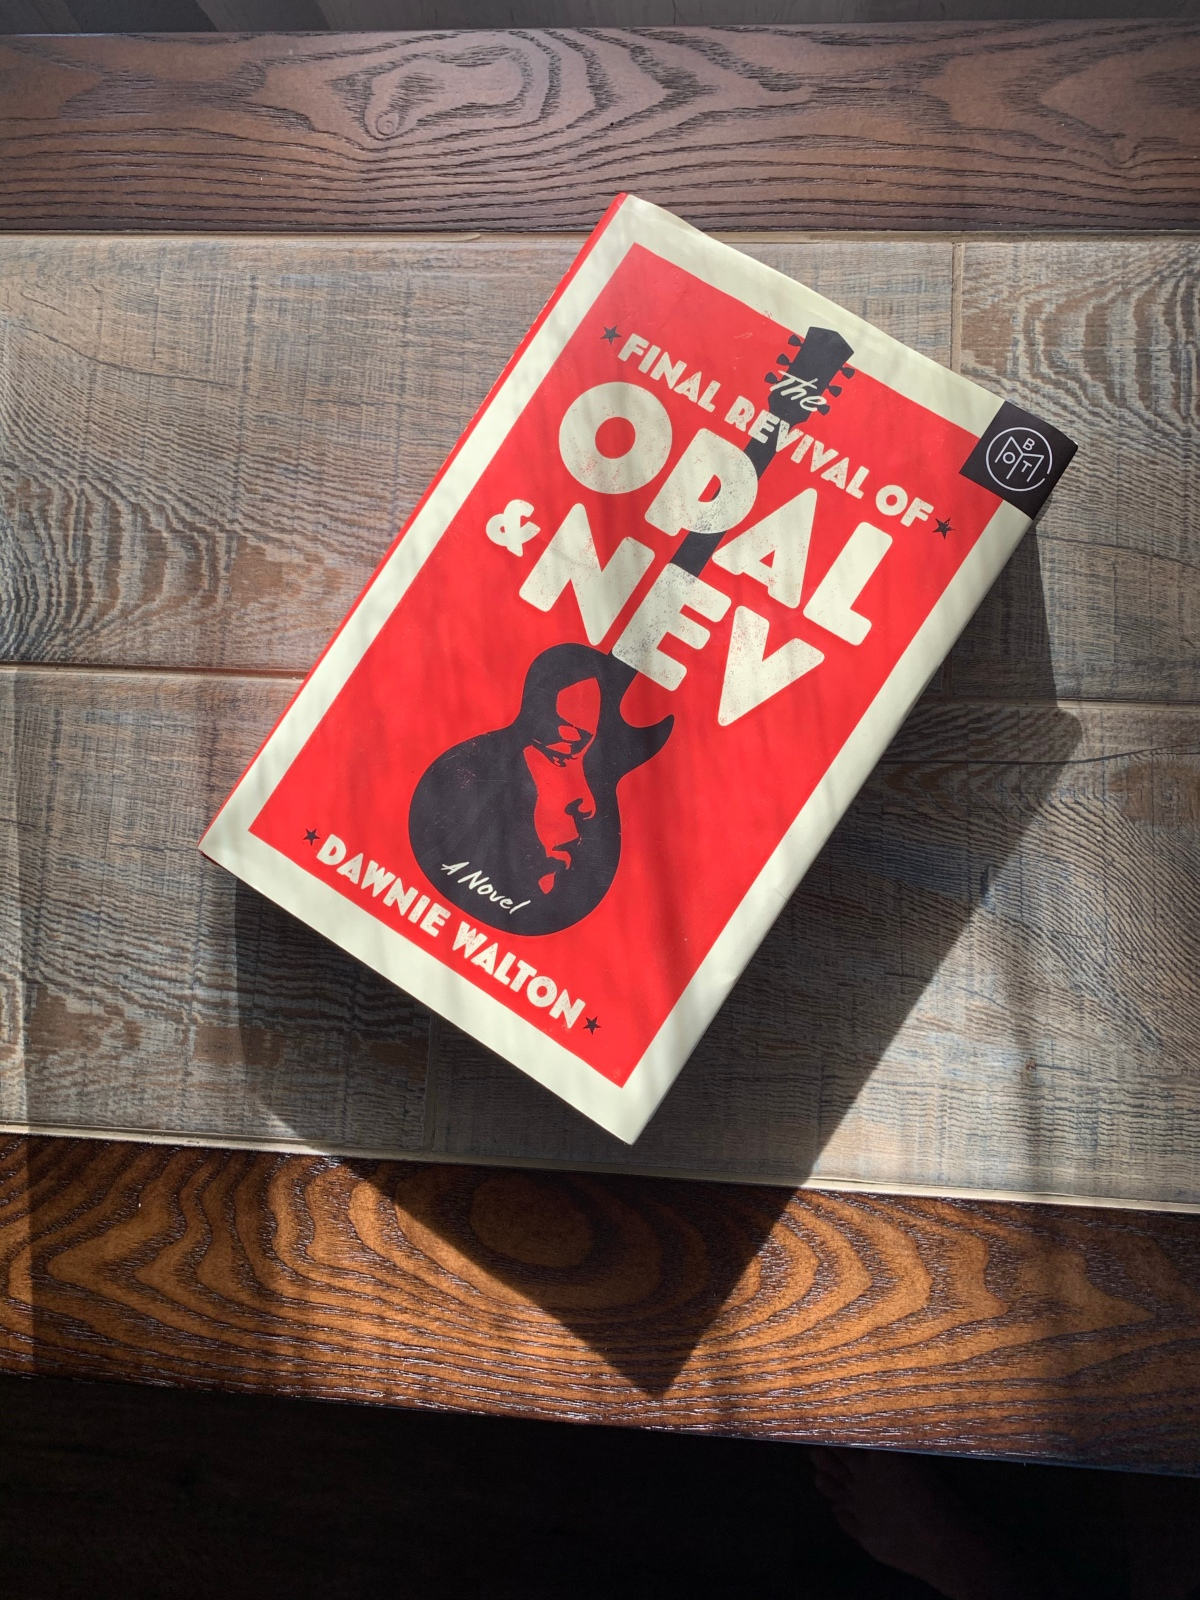 The Final Revival of Opal &Nev